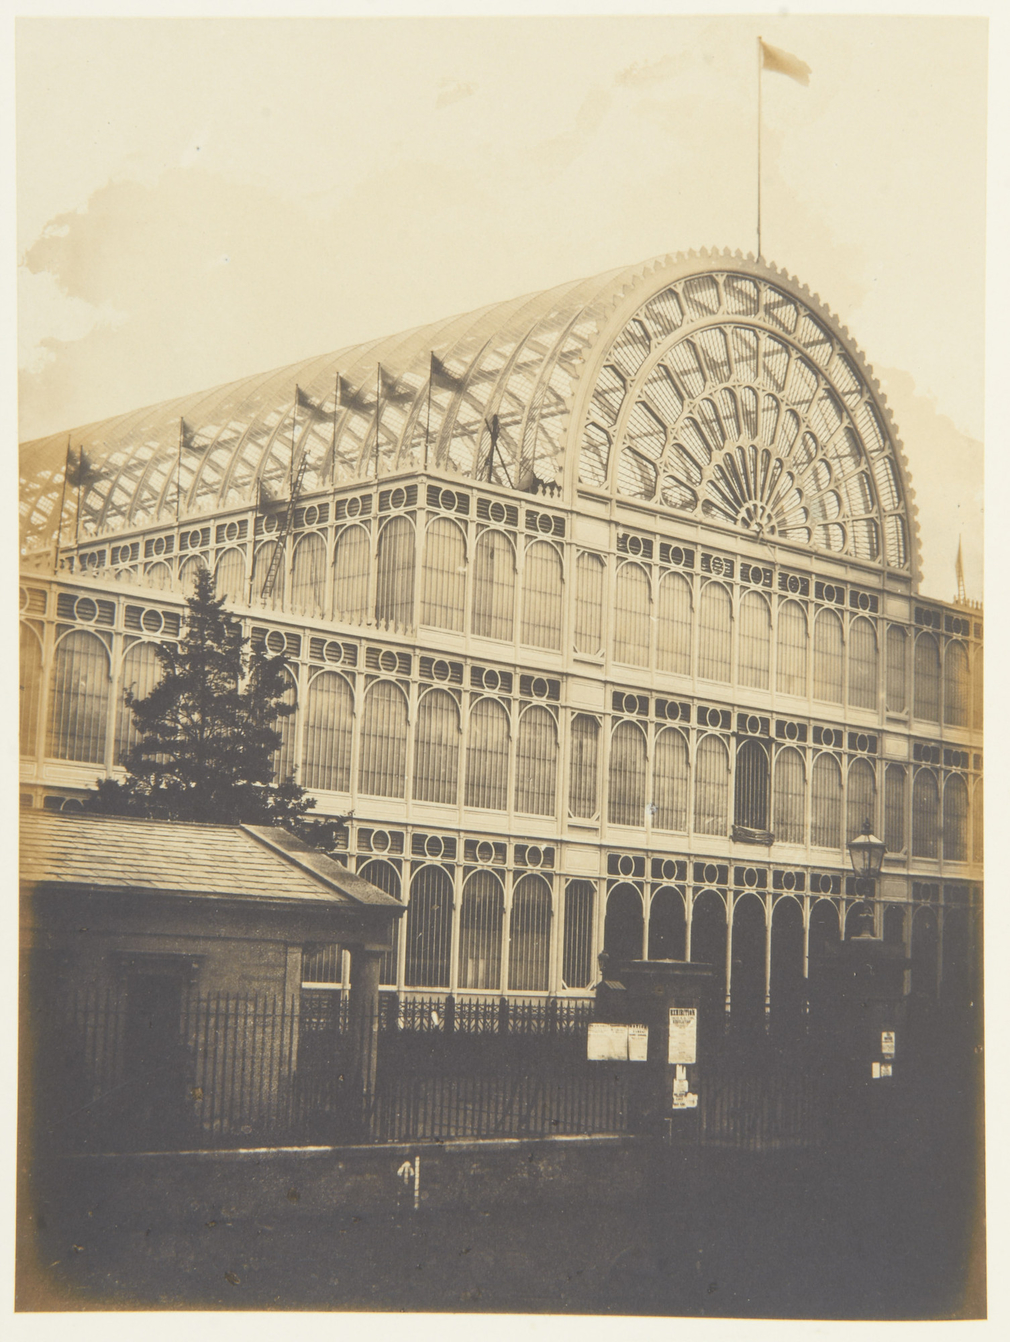 Photographof anexternal view of the south transept of the Crystal Palace, Hyde Park during the Great Exhibition.Flags fly along the building and top ofthe arched roof. <br><br><p>This photograph is from Volume II (RCIN 2800001)